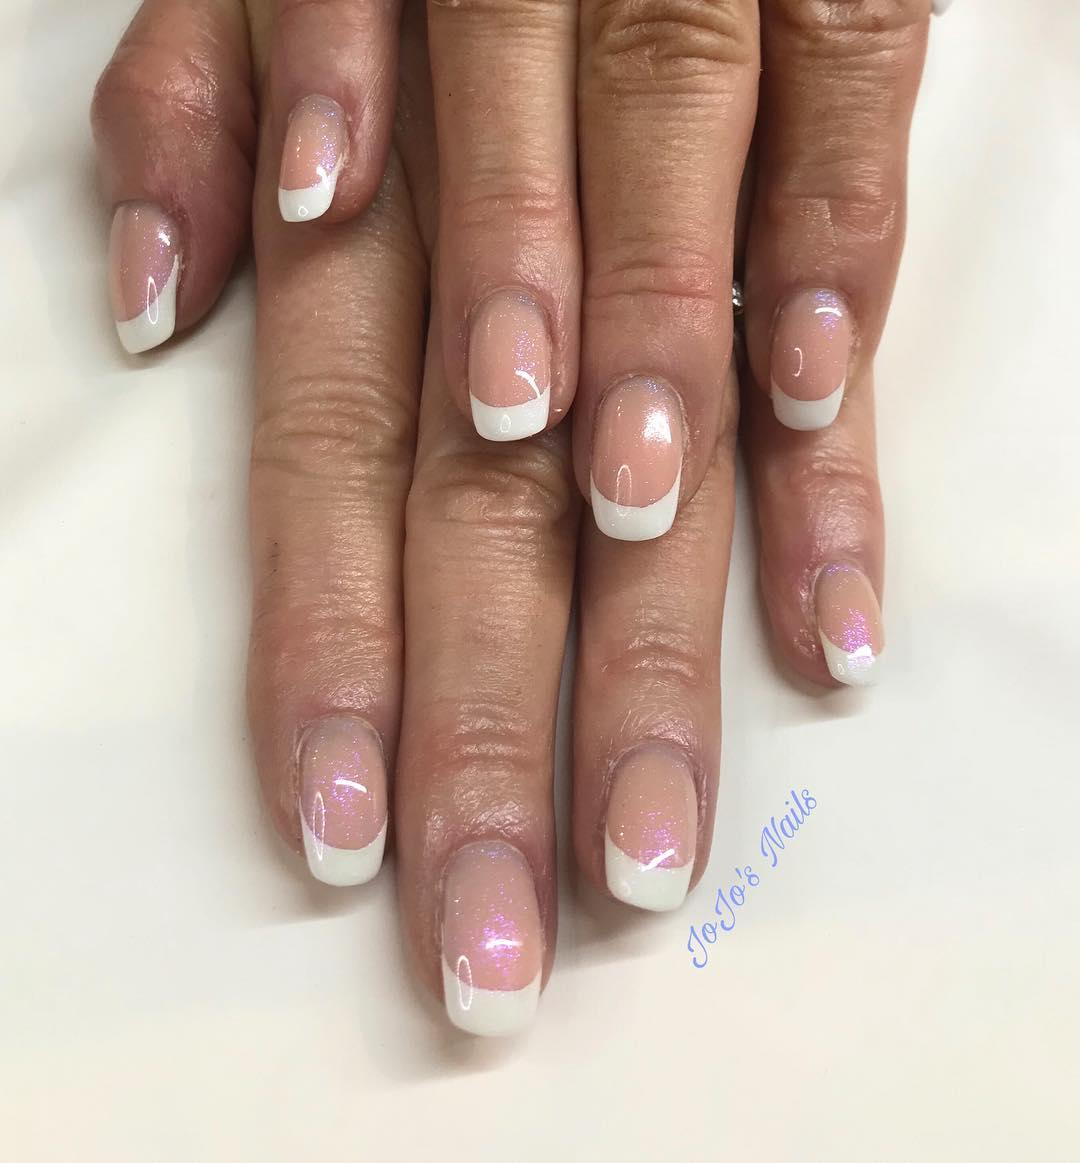 special french manicure nail designs 11 - 14 Special French Manicure Nail Designs